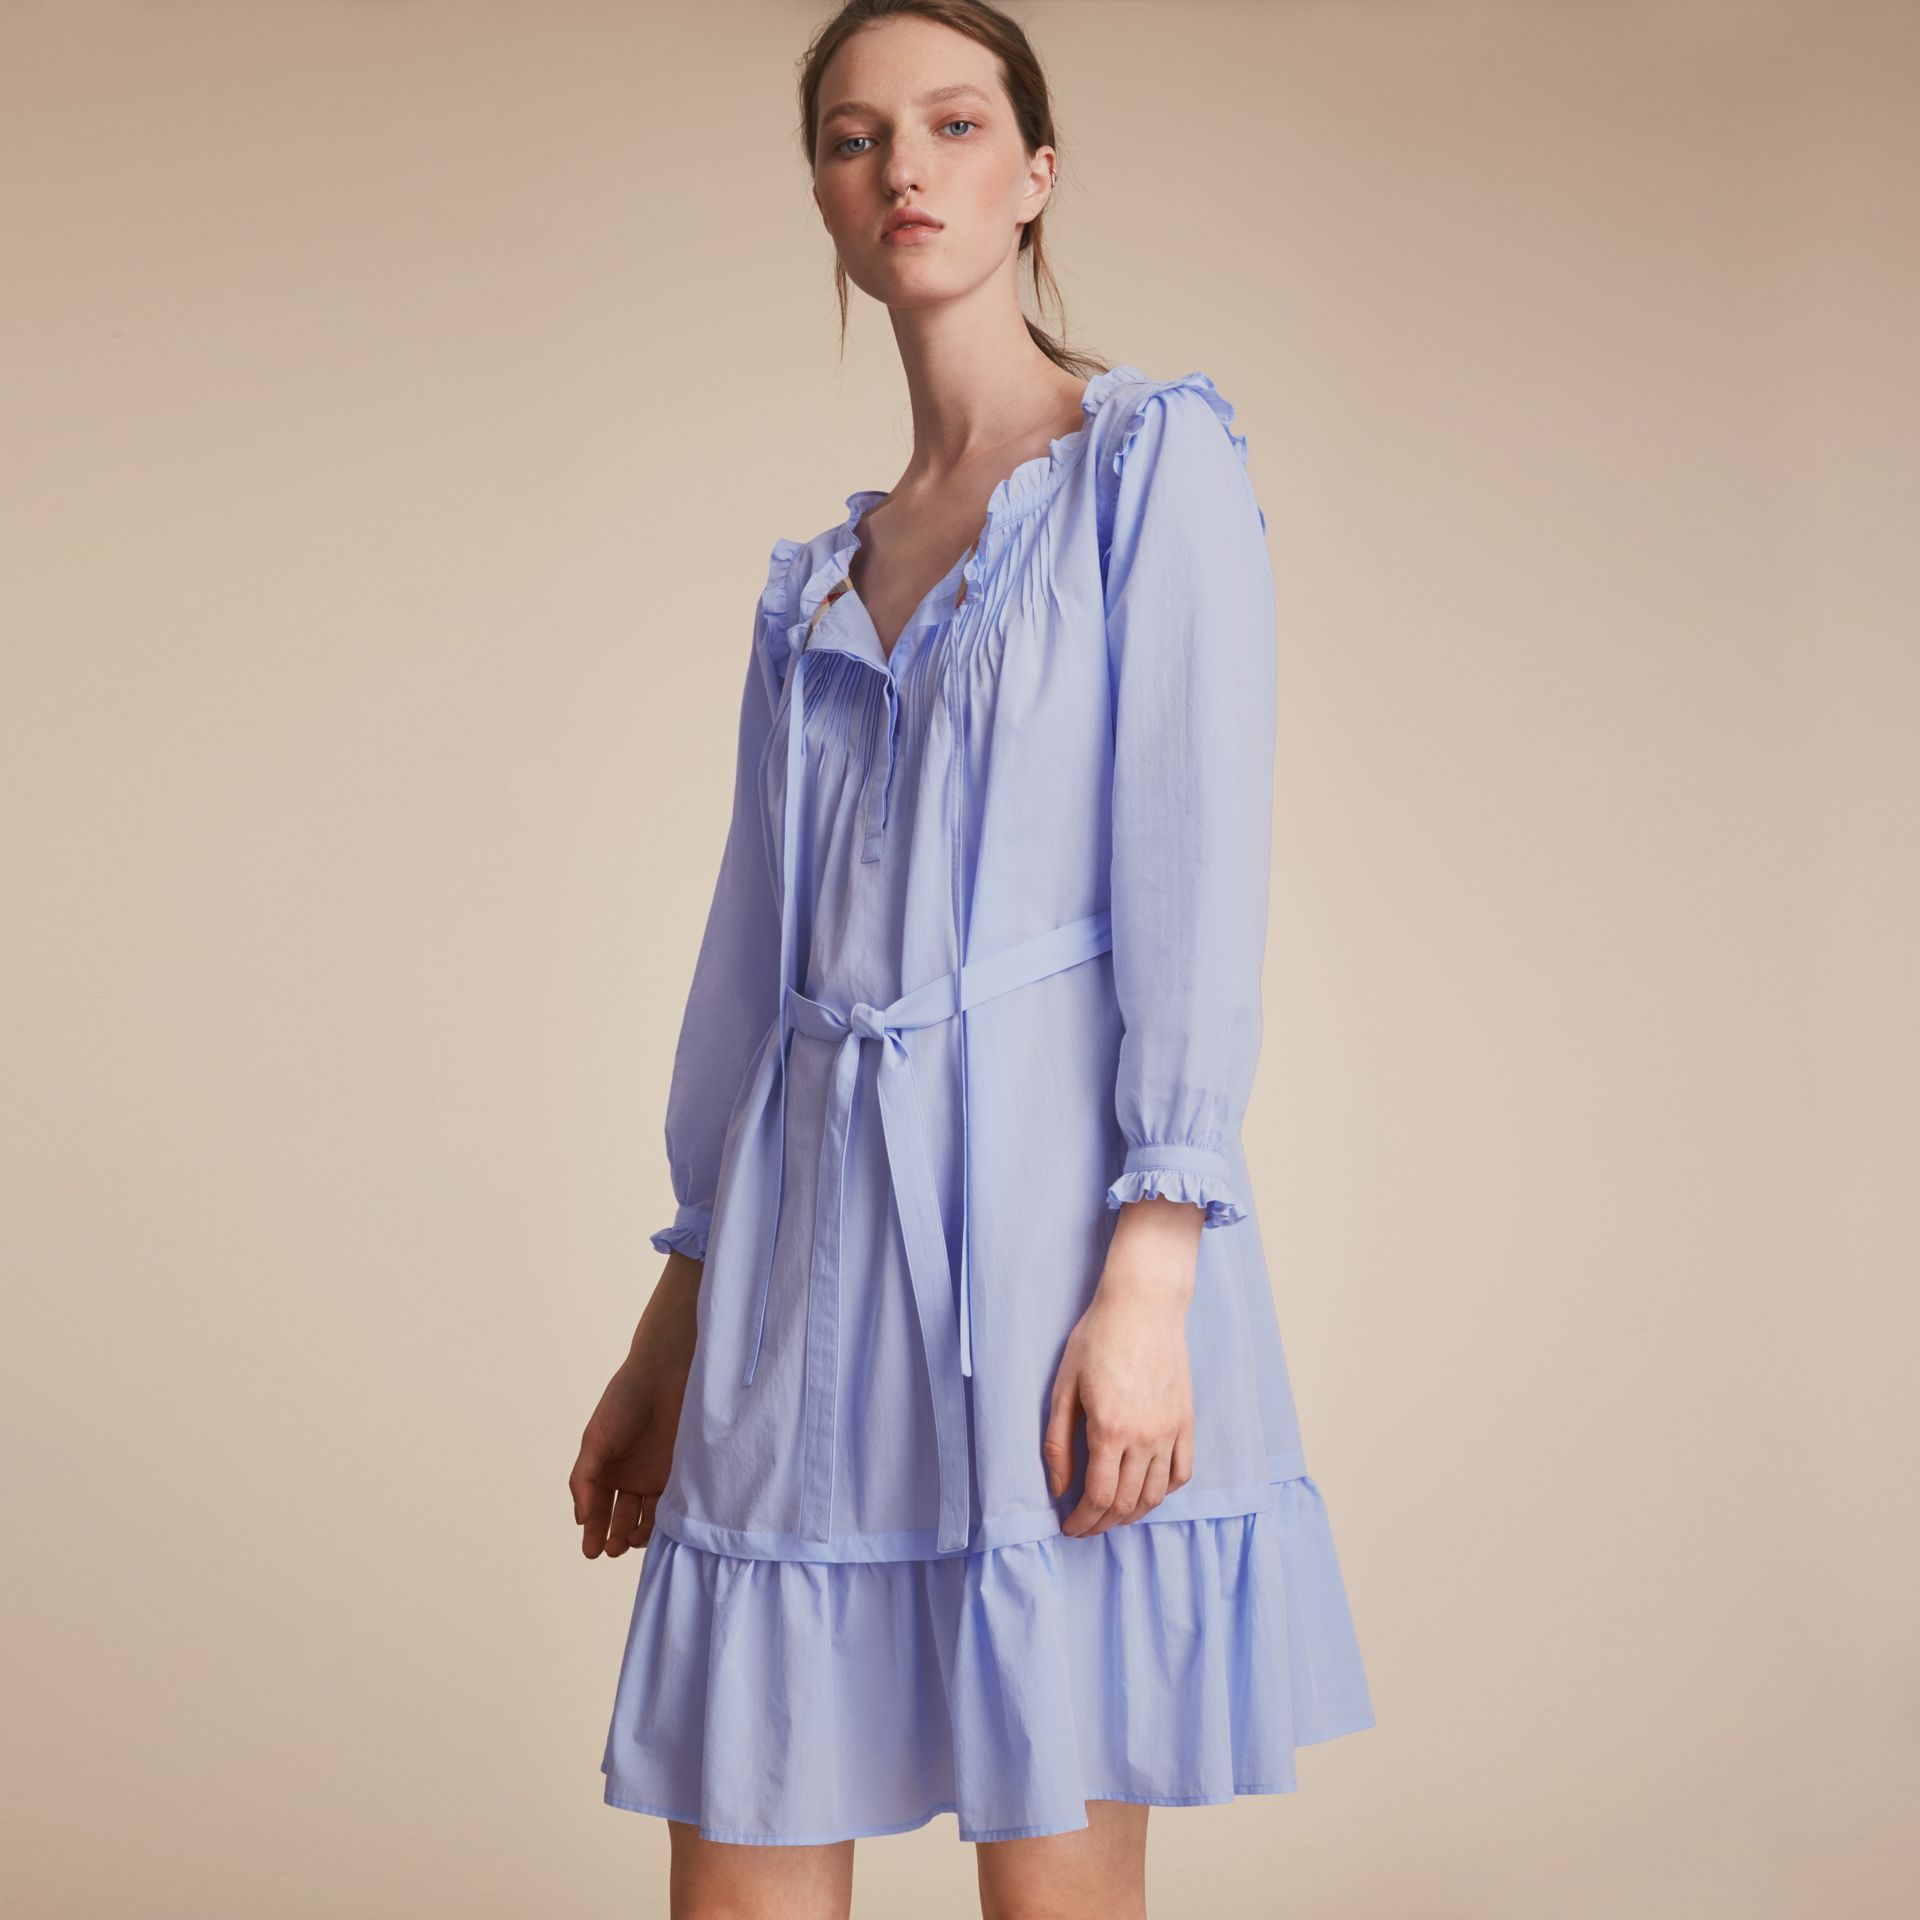 Ruffle and Pintuck Detail Cotton Dress - Women | Burberry Australia - gallery image 6